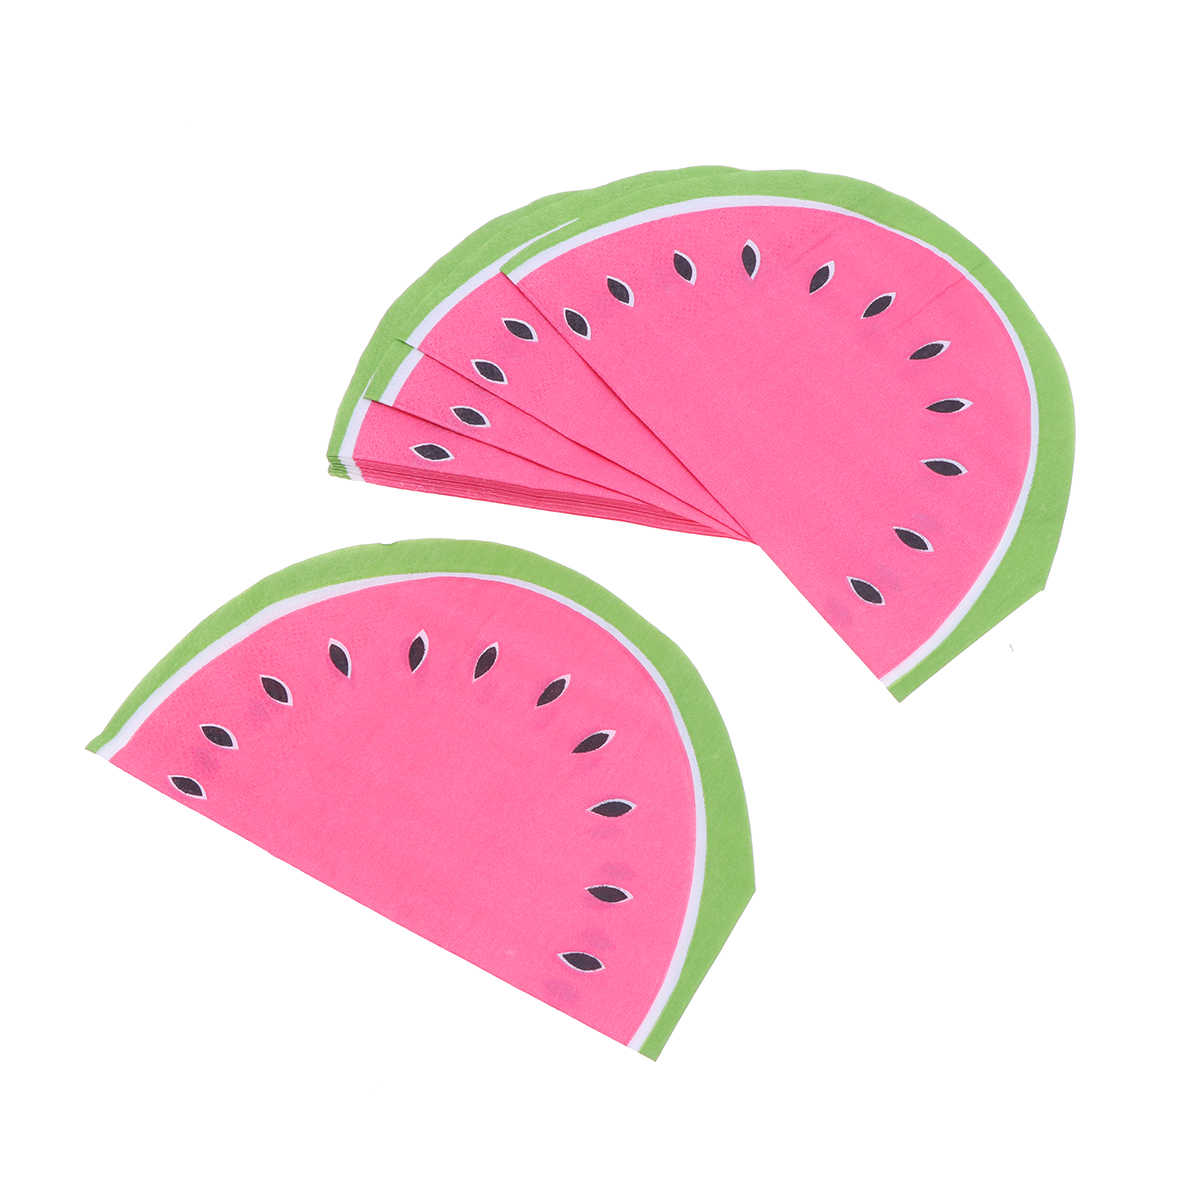 20pcs Fruit Watermelon Disposable Paper Napkins for Cocktail Party Tableware Home Bar BBQ Serveware